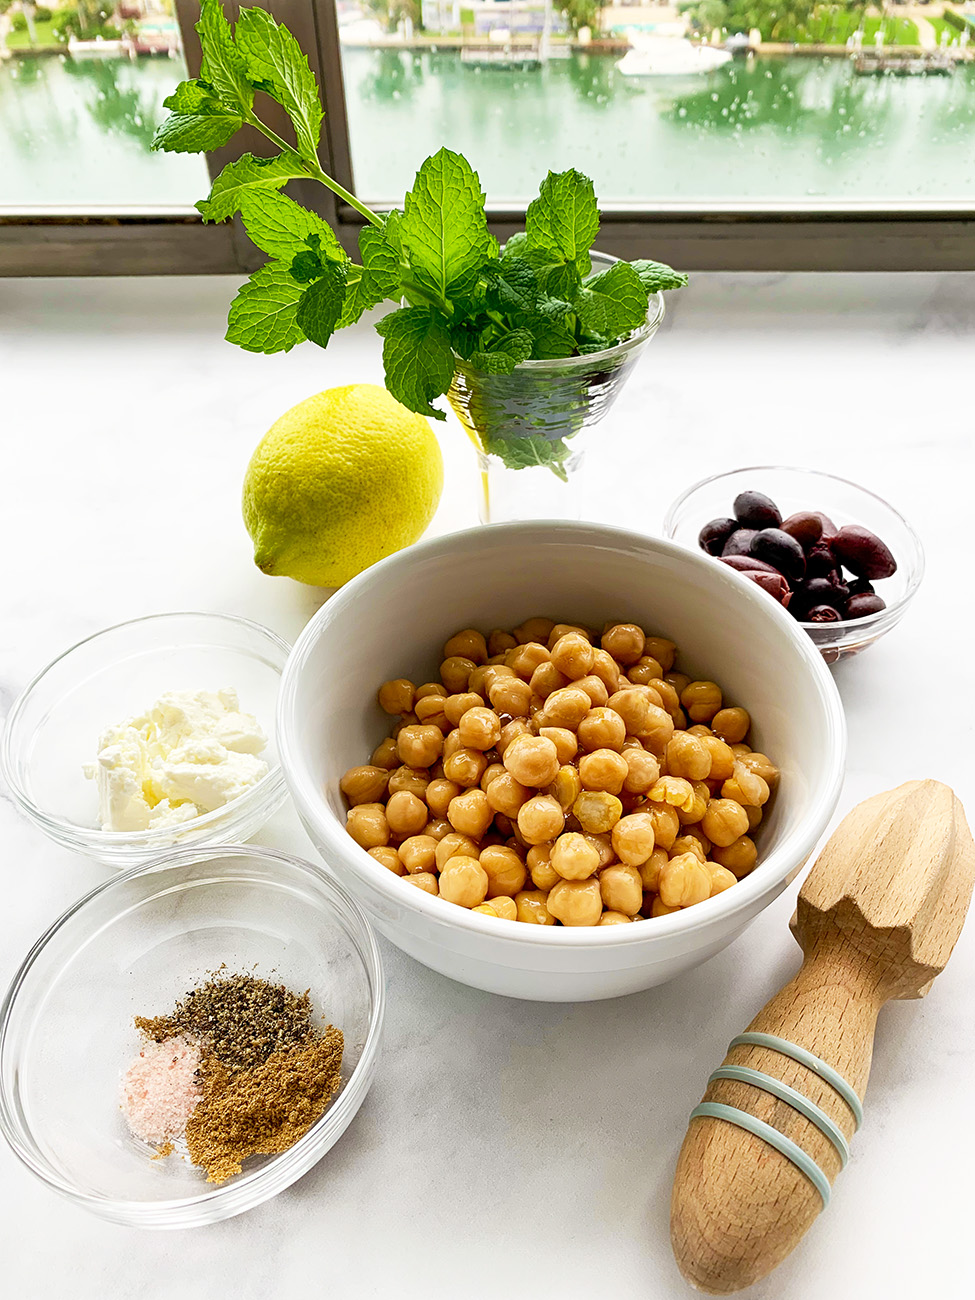 Greek Hummus made with feta cheese and kalamata olives. Add fresh mint, lemon juice and zest for a burst of fresh Mediterranean flavor.